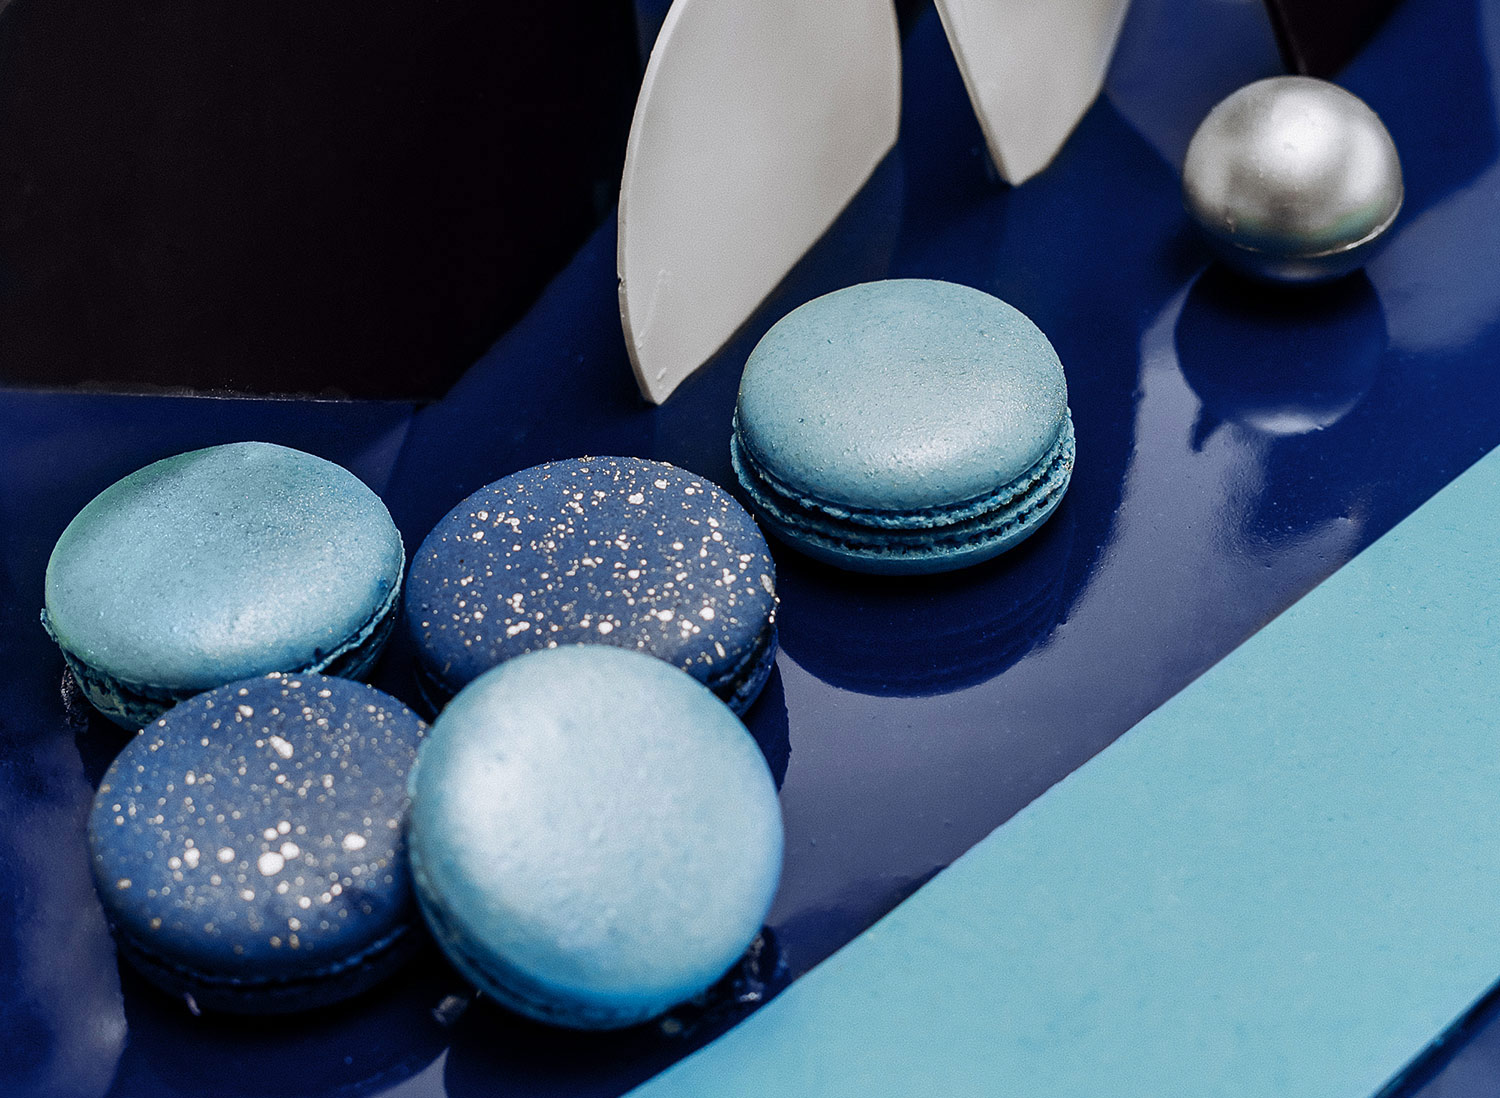 Macarons and geometric shapes made of chocolate on the cake.